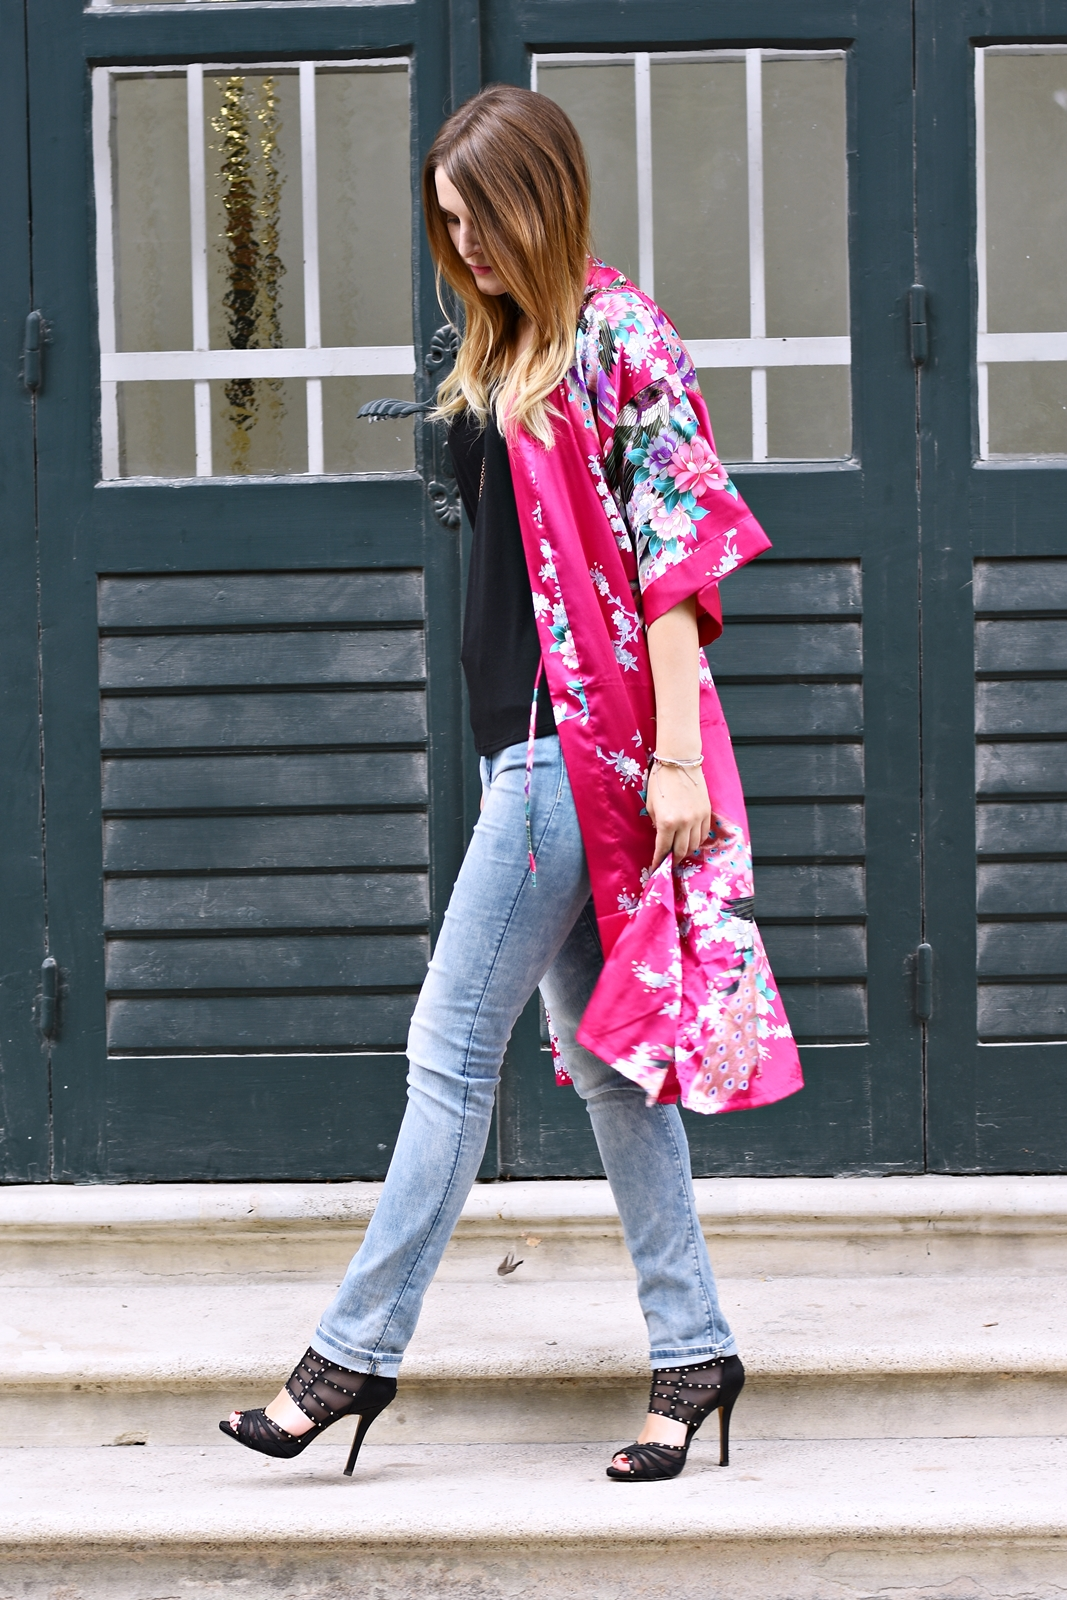 Der Kimono Trend - Summer Colors - sommerliche Farben - Streetstyle - Mode - Fashion - High Heels - Fashionladyloves by Tamara Wagner - Fashionblog